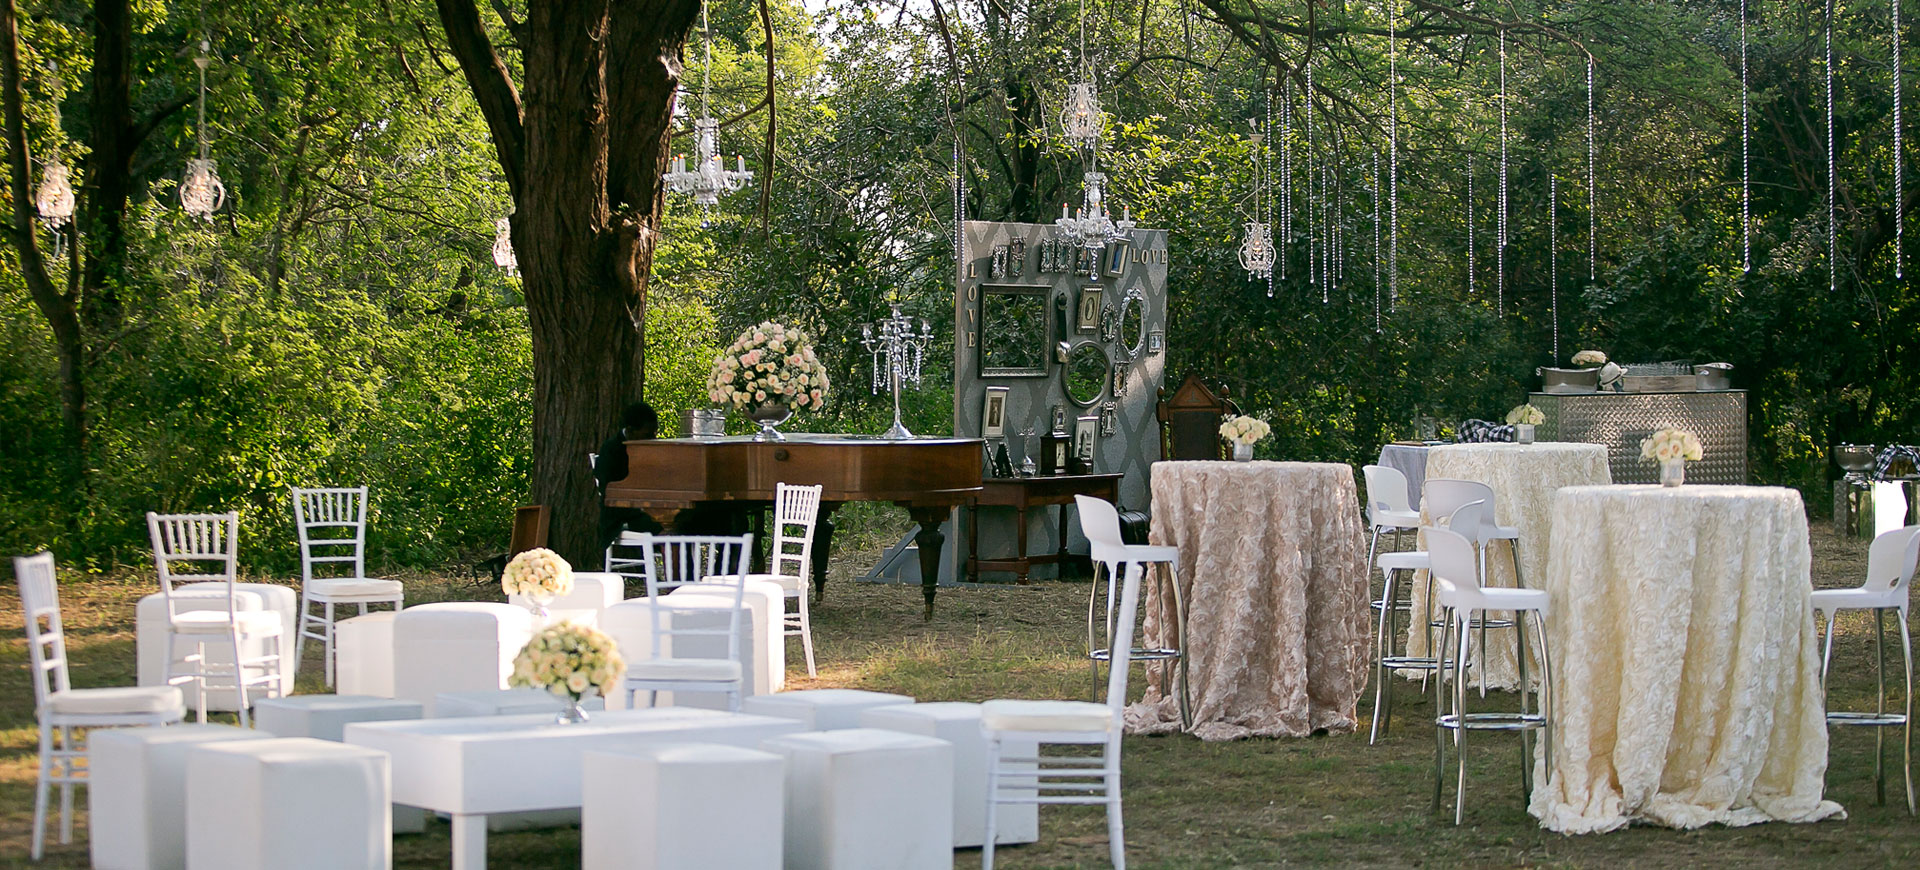 Event Planners Victoria Falls